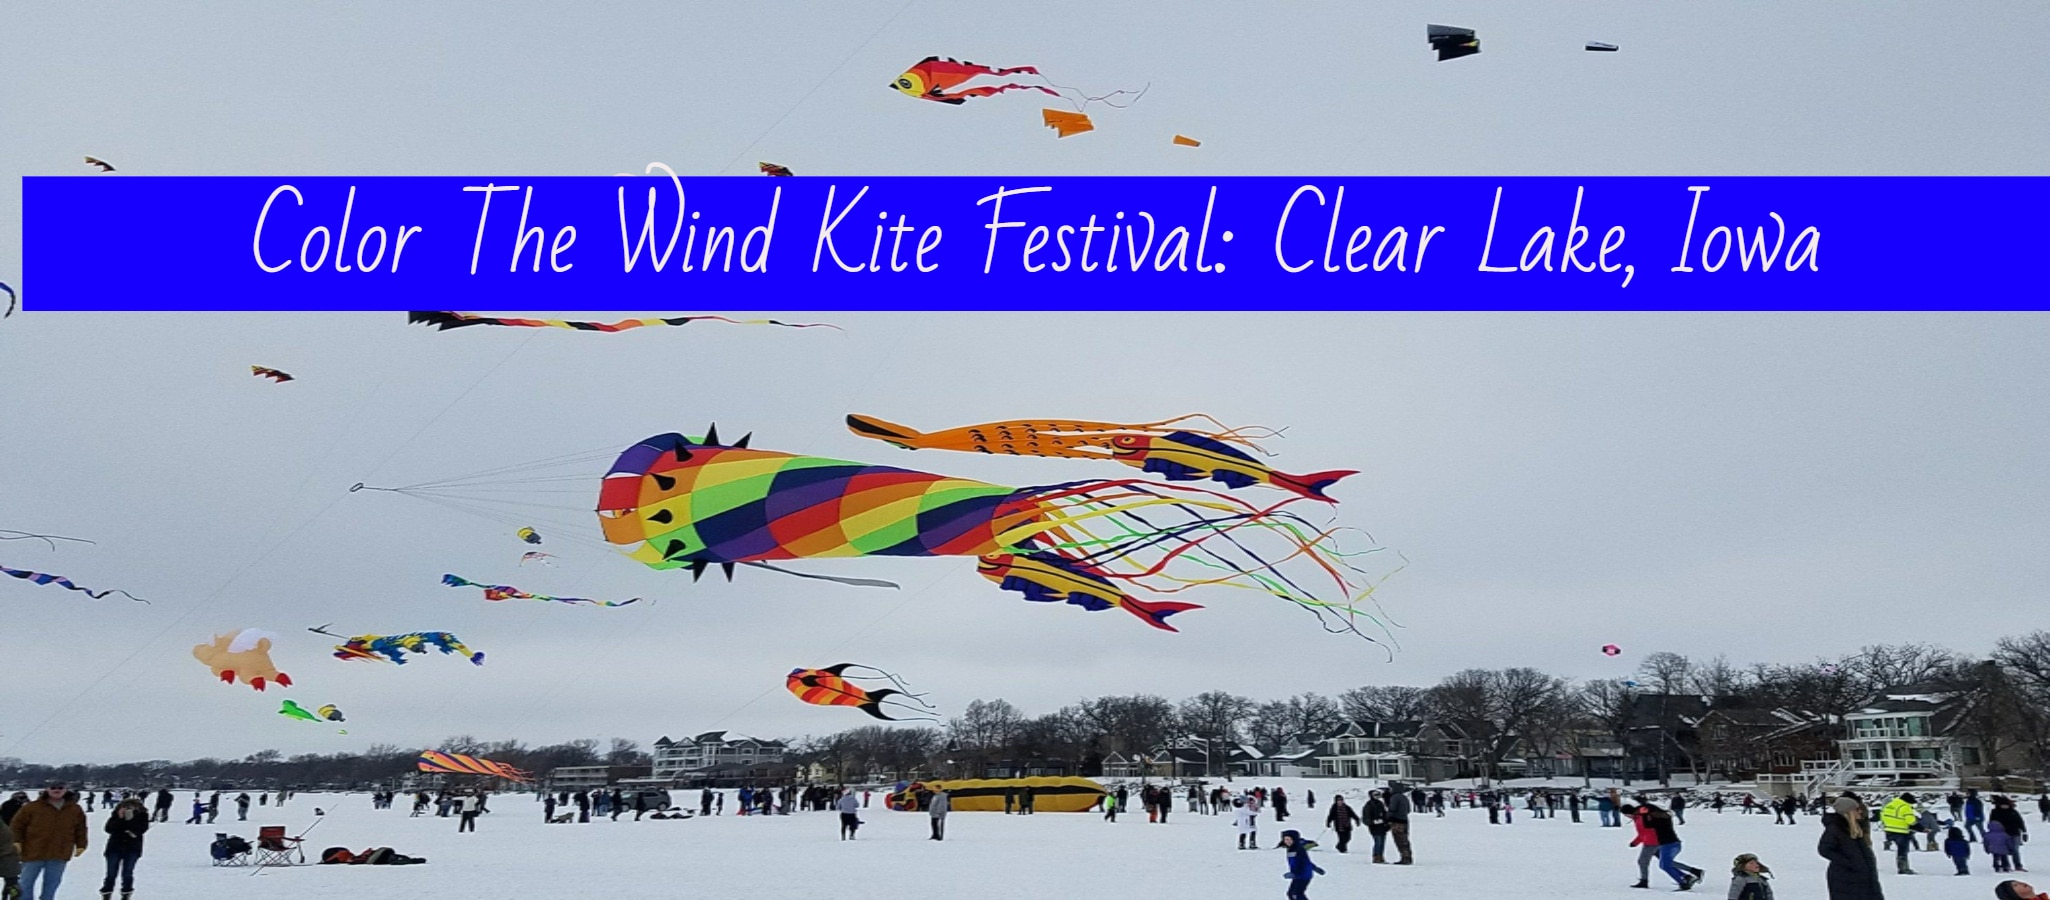 Color The Wind Kite Festival Clear Lake, Iowa